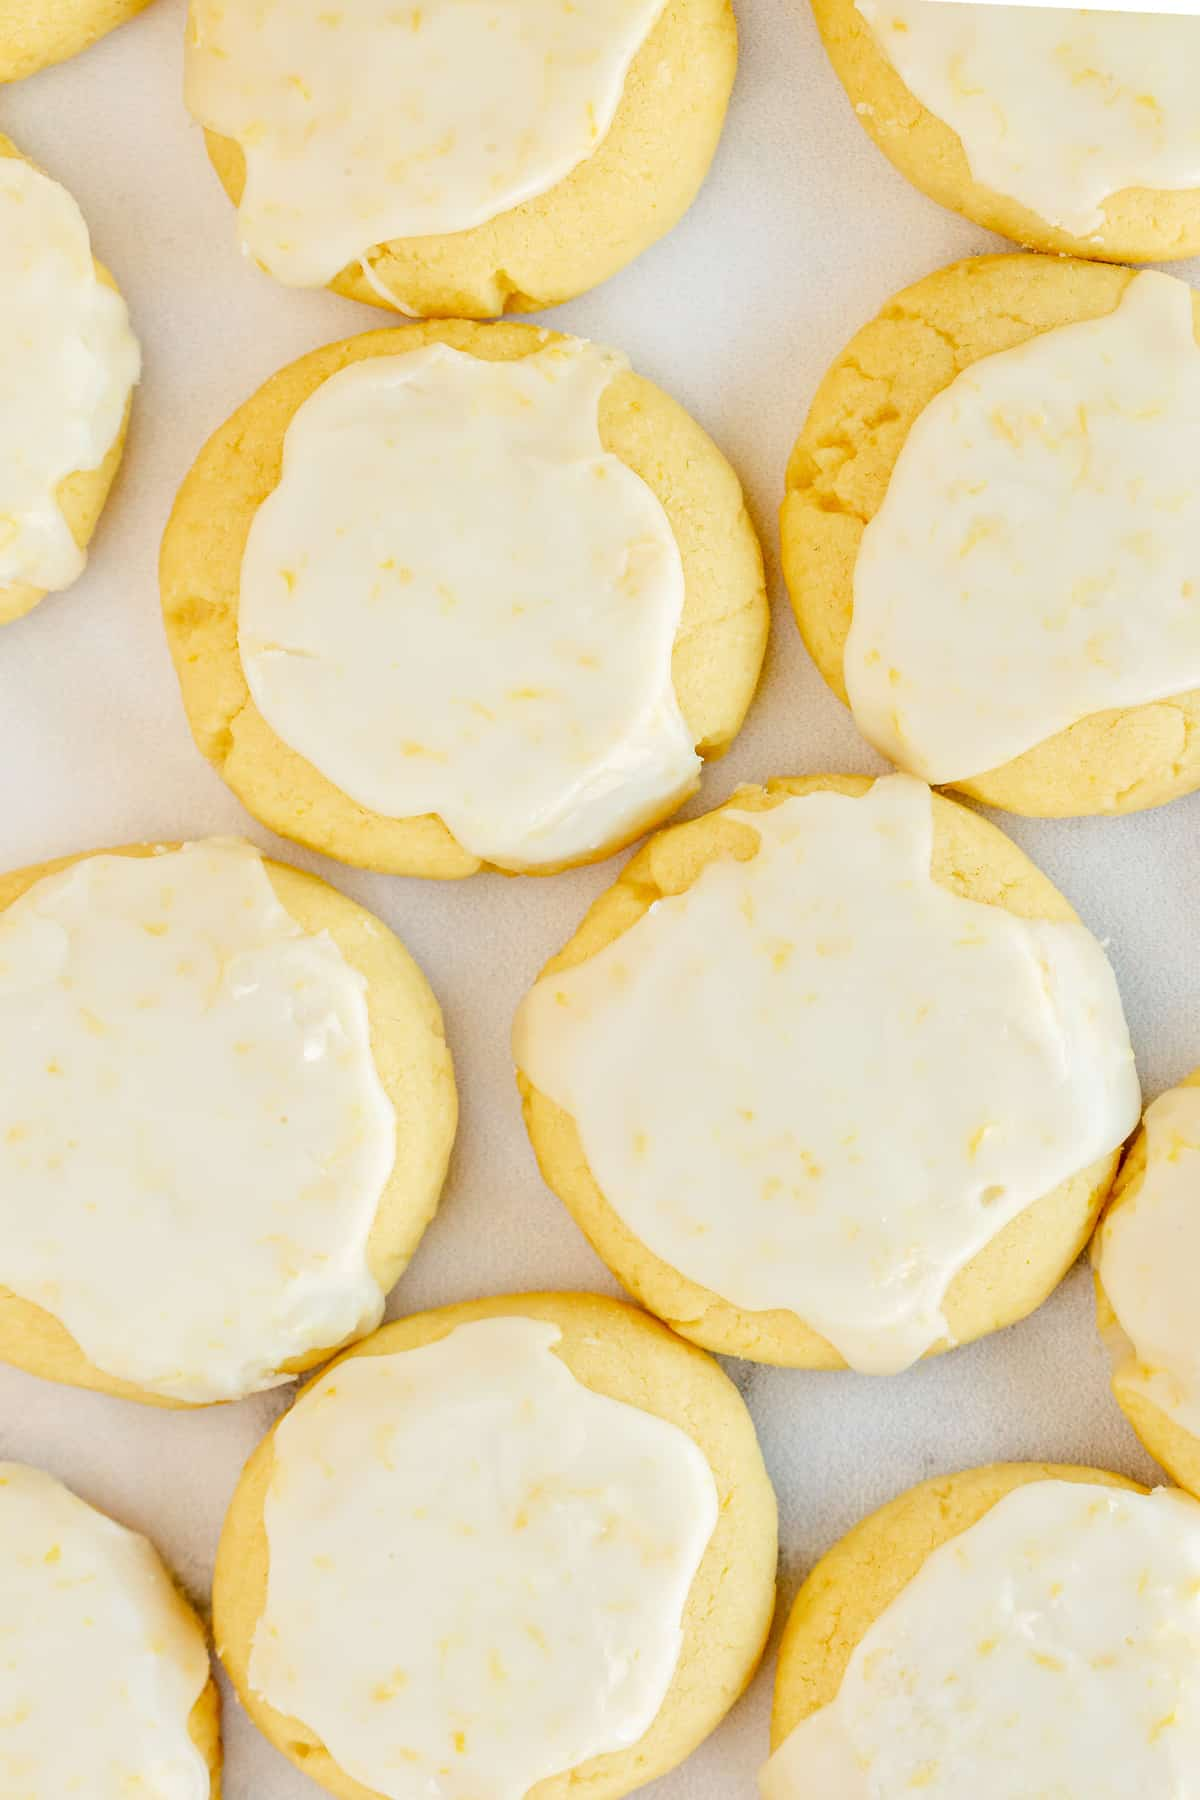 Lemon glazed cookies shot from over the top.